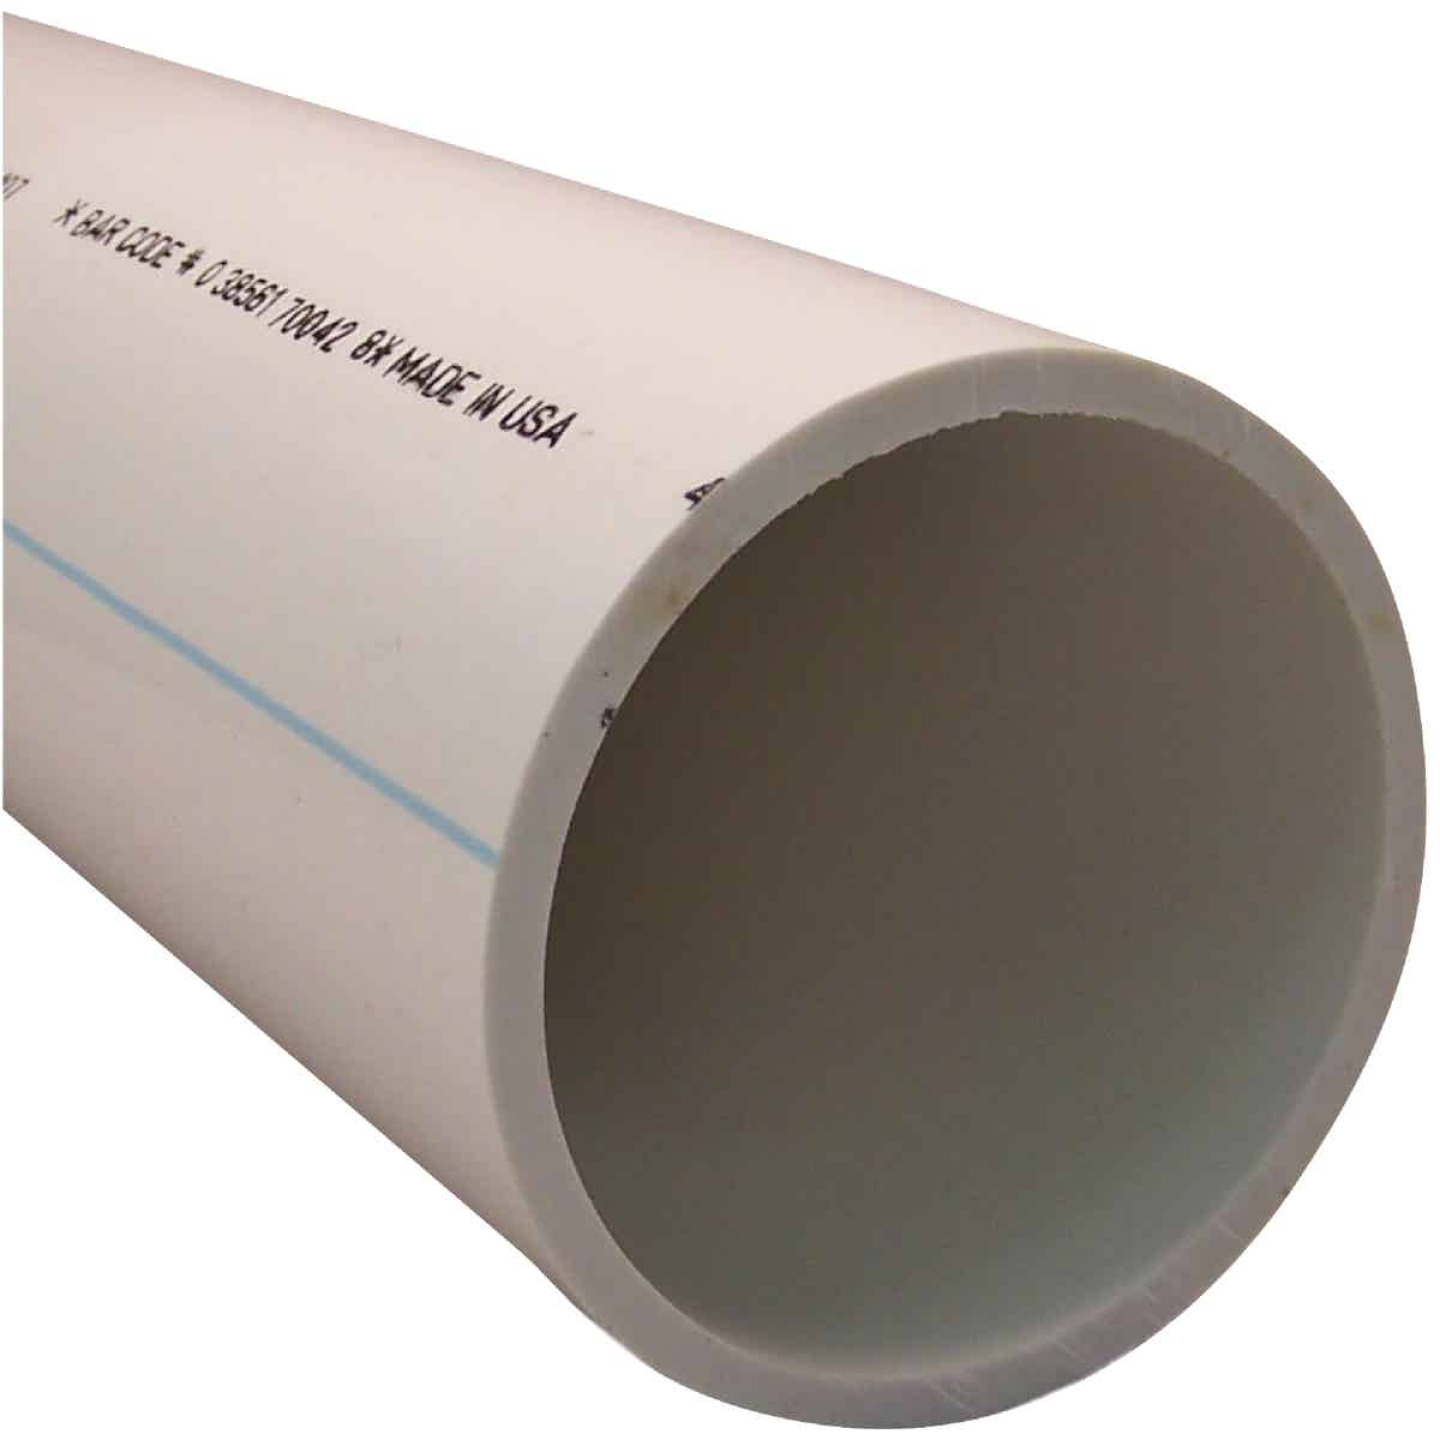 Charlotte Pipe 4 In. X 5 Ft. PVC-DWV Cellular Core Schedule 40 Pipe Image 1